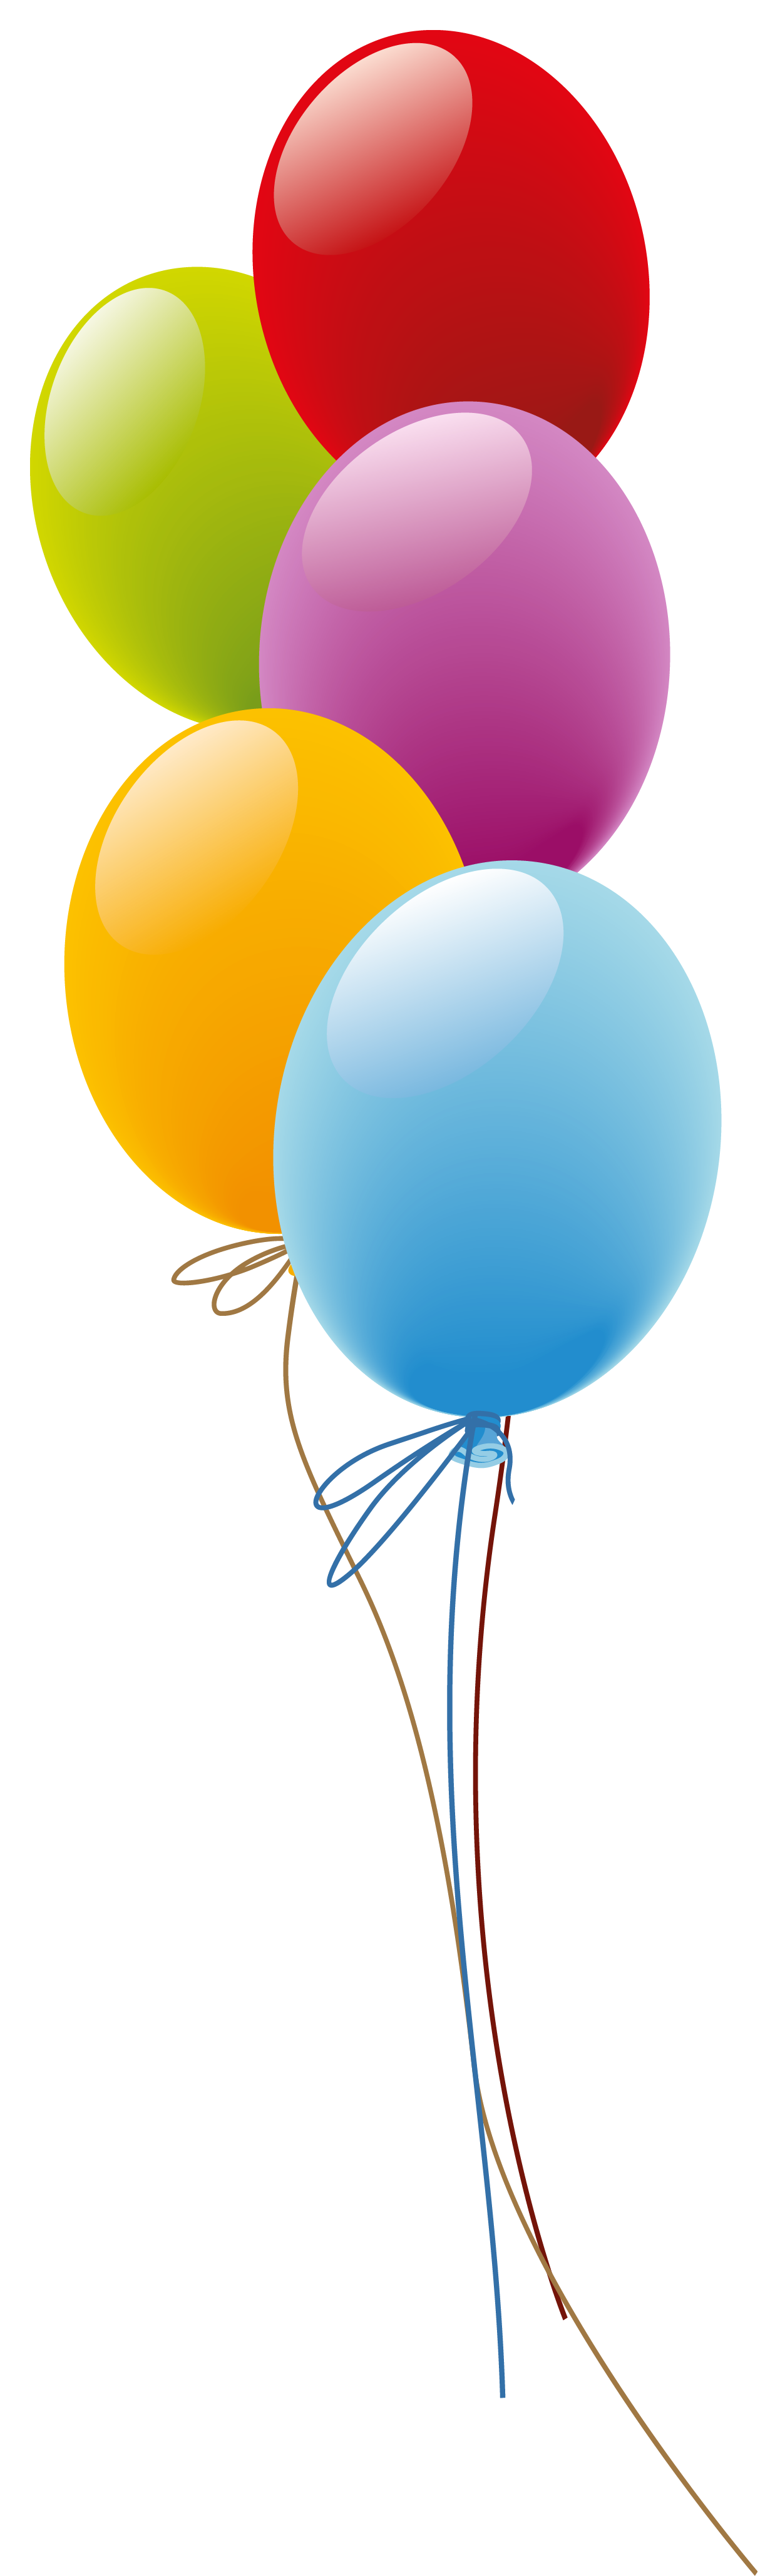 Pin by vicki cummings. Four clipart birthday baloon clip art library library